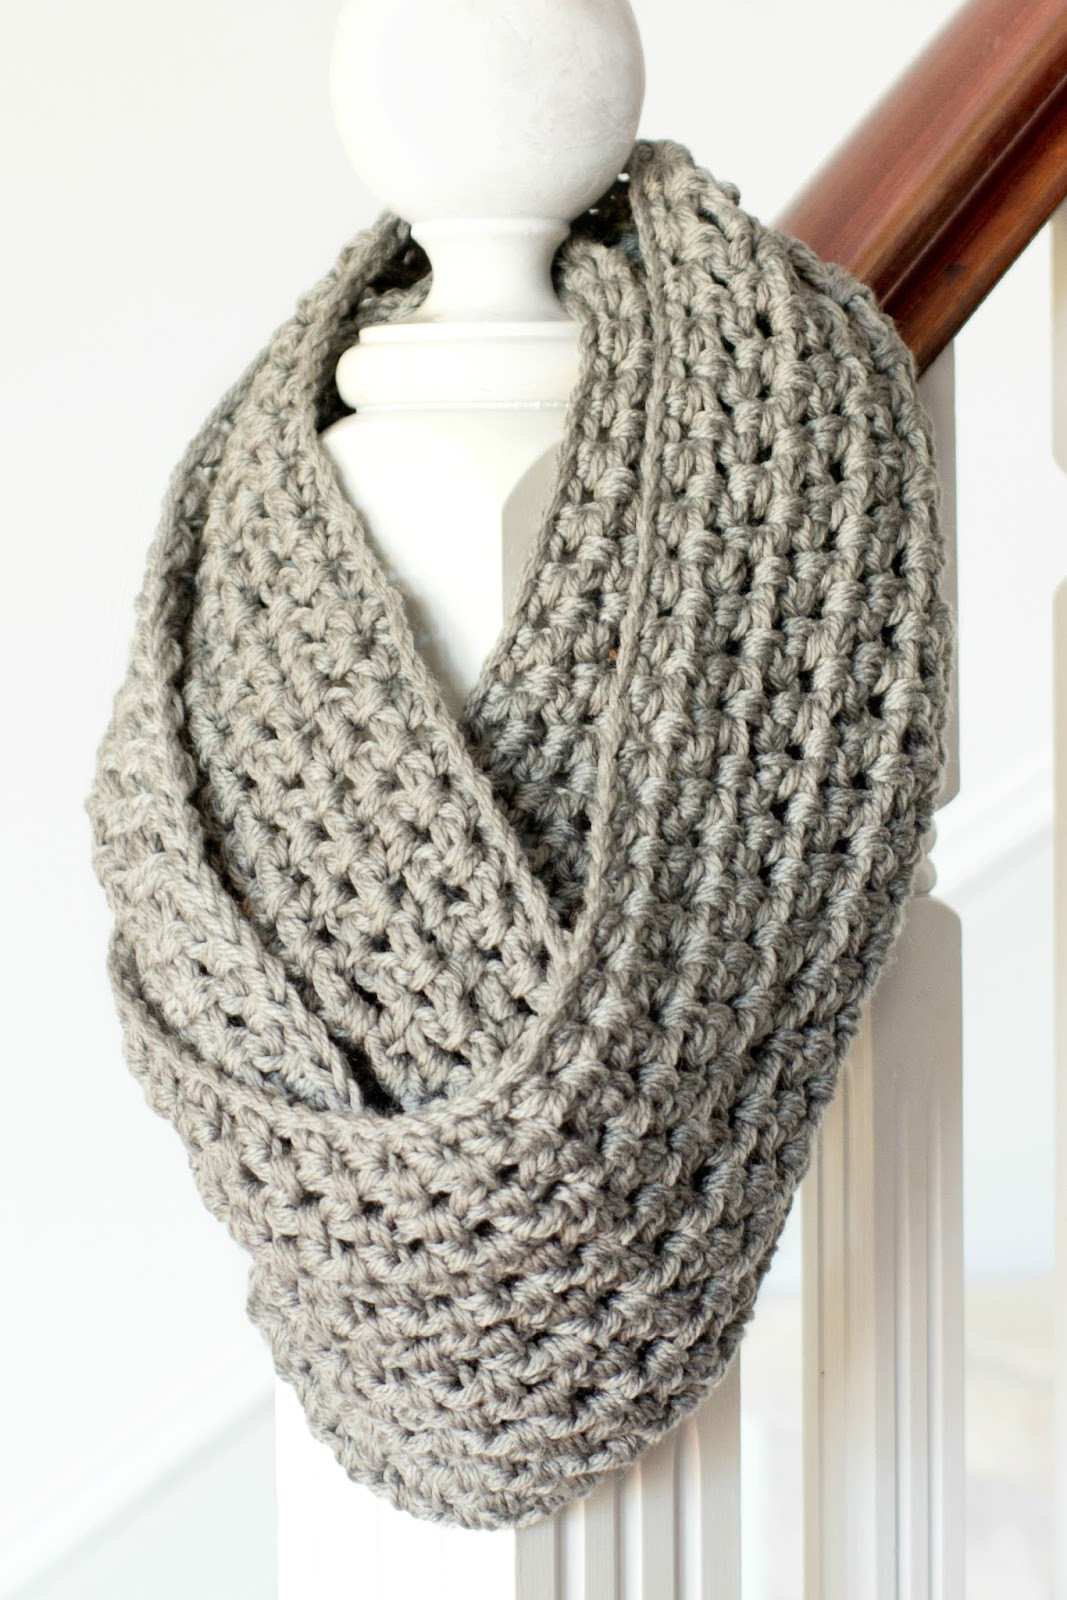 Crochet Scarf Beautiful 42 Fun and Cozy Diy Scarves Crafts to Make Of Incredible 48 Images Crochet Scarf